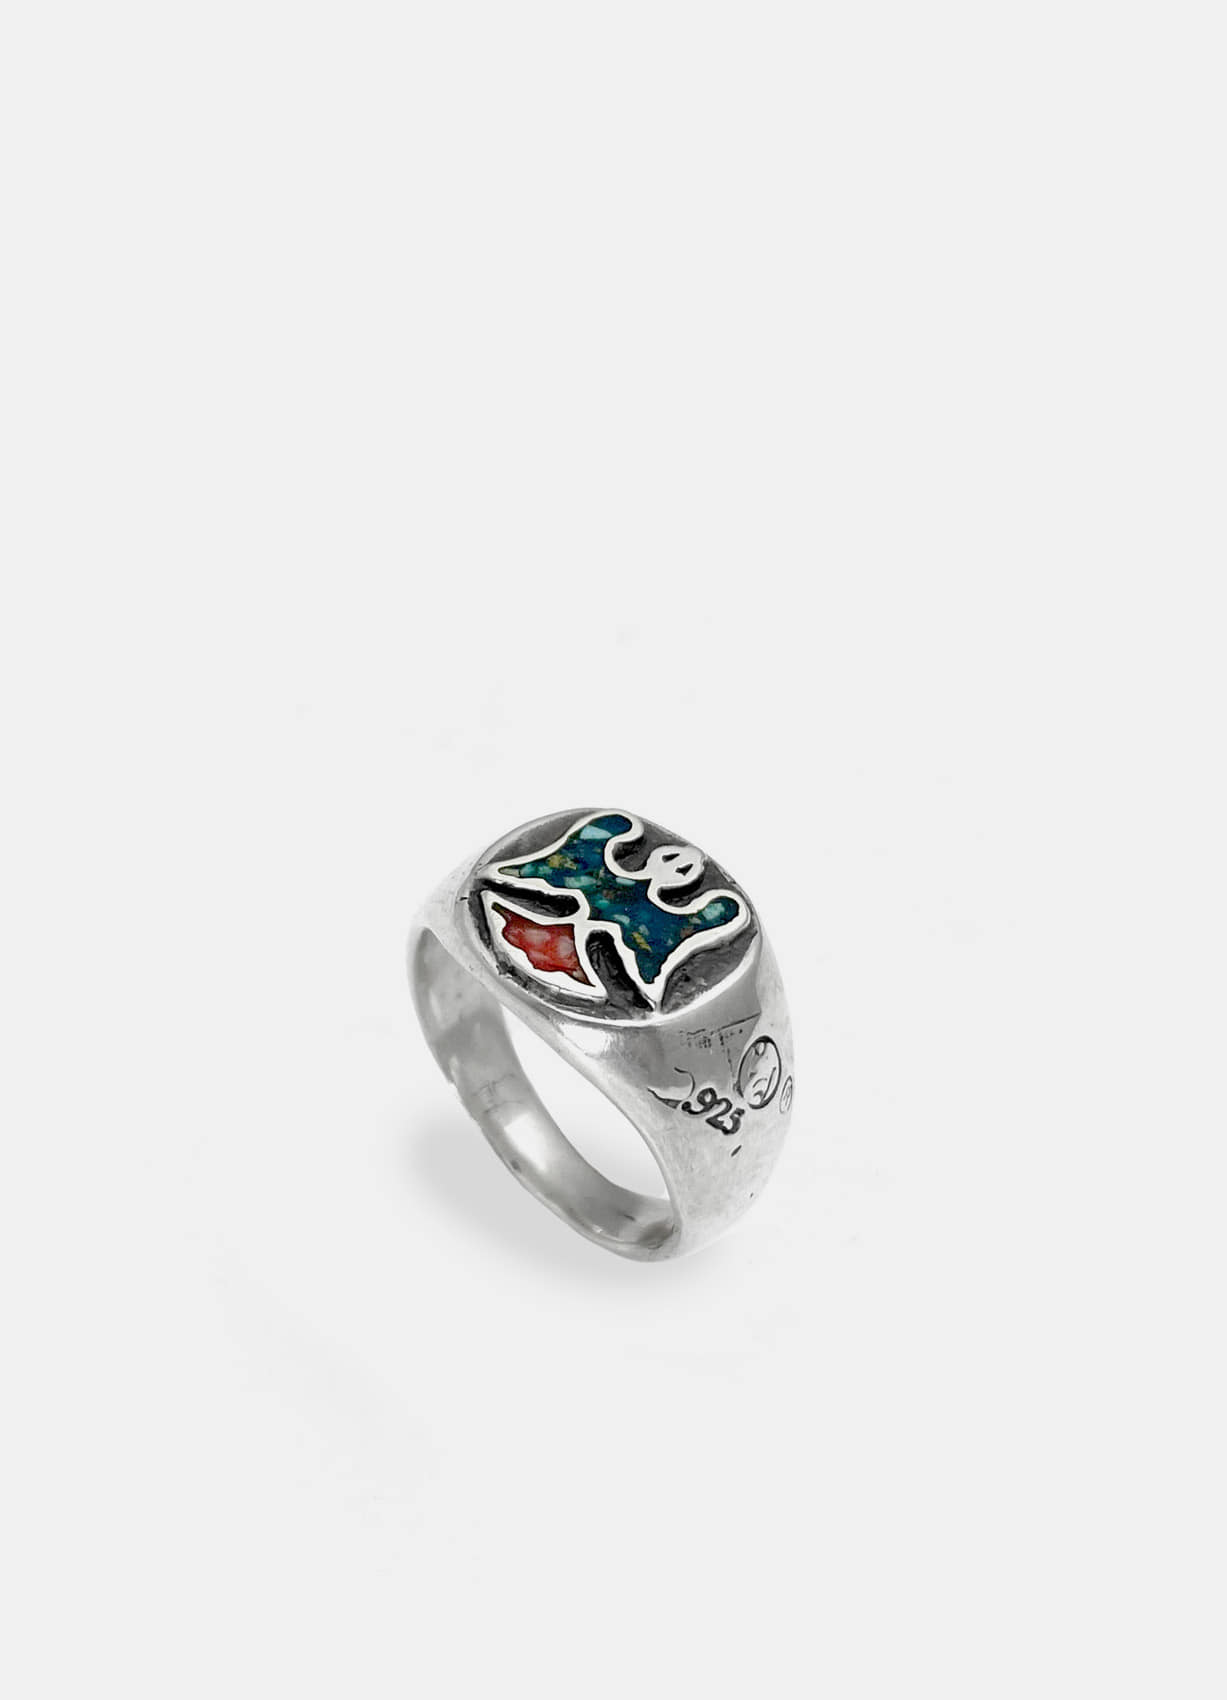 Firebird Inlay Silver Ring Small